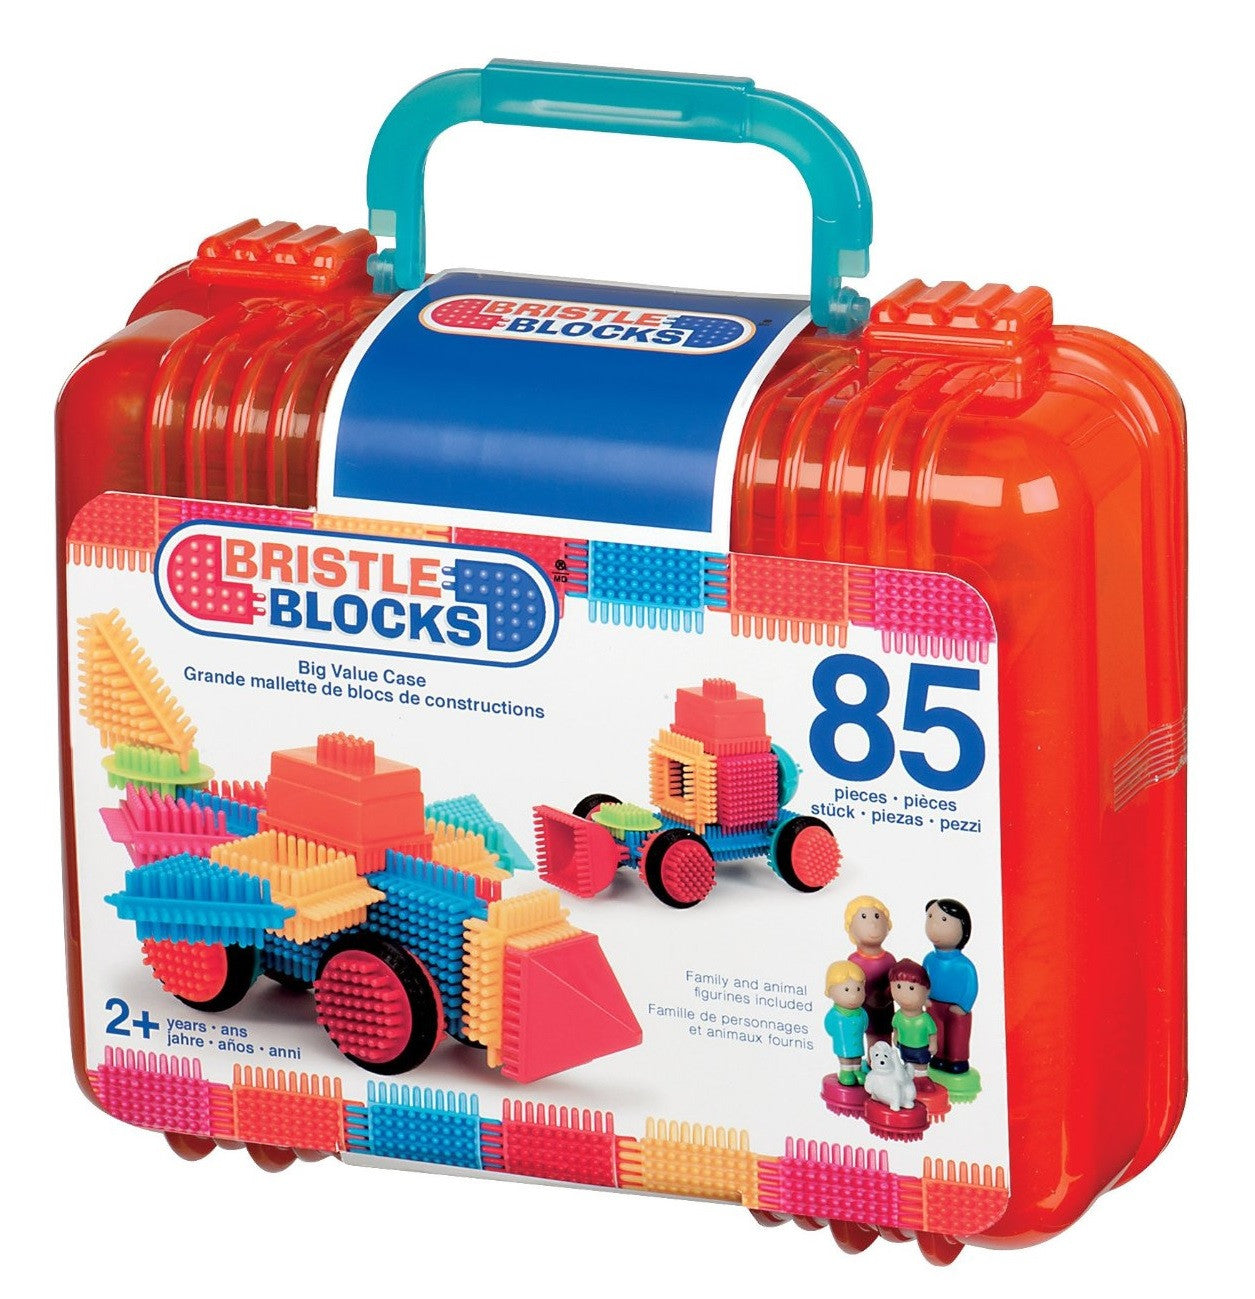 85pc Bristle Blocks Builder Set w/Storage Case - Off The Wall Toys and Gifts